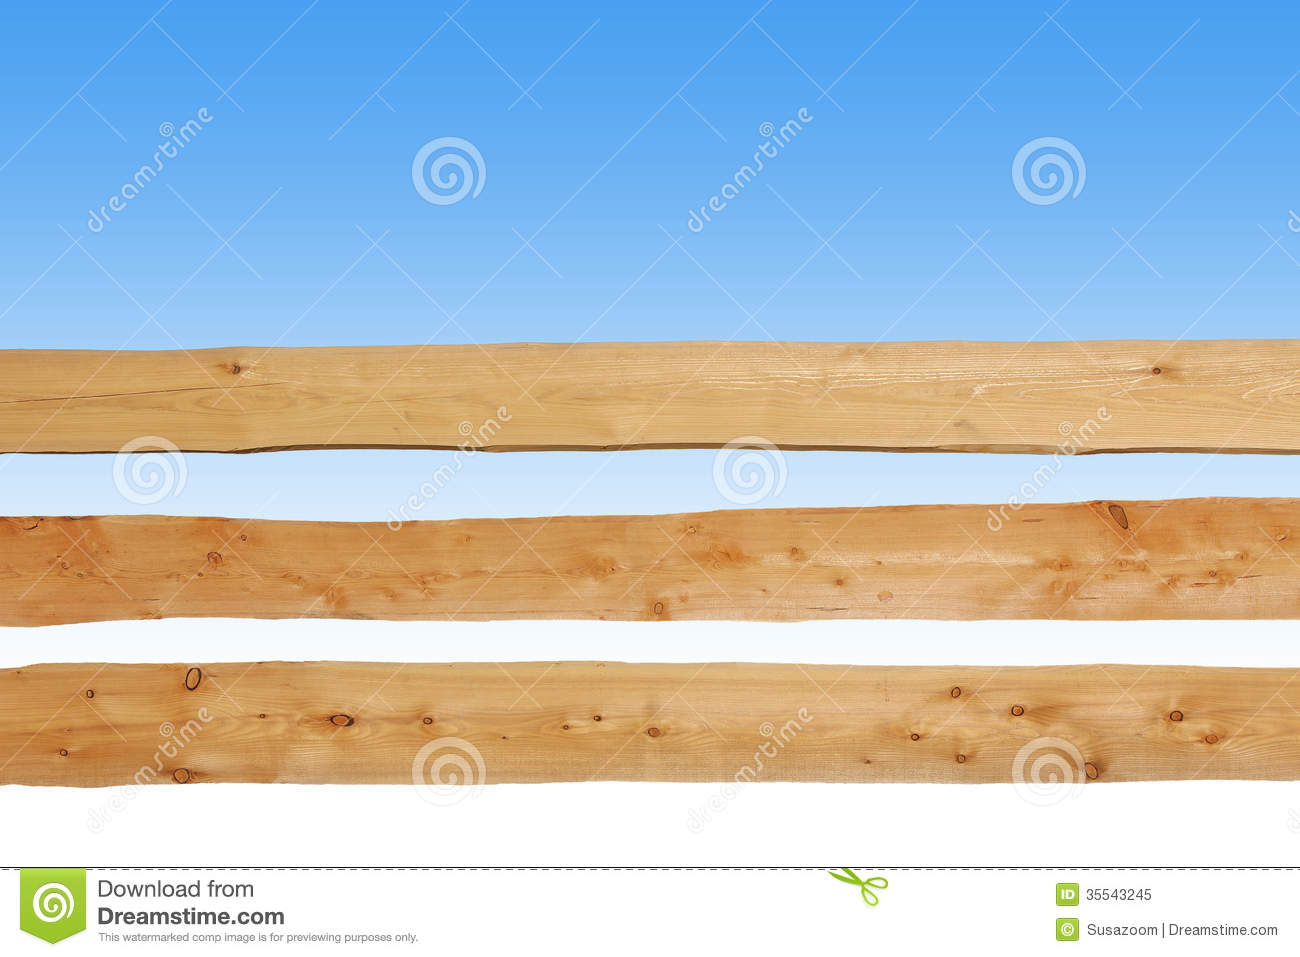 Wooden fence made of horizontal planks against blue sky